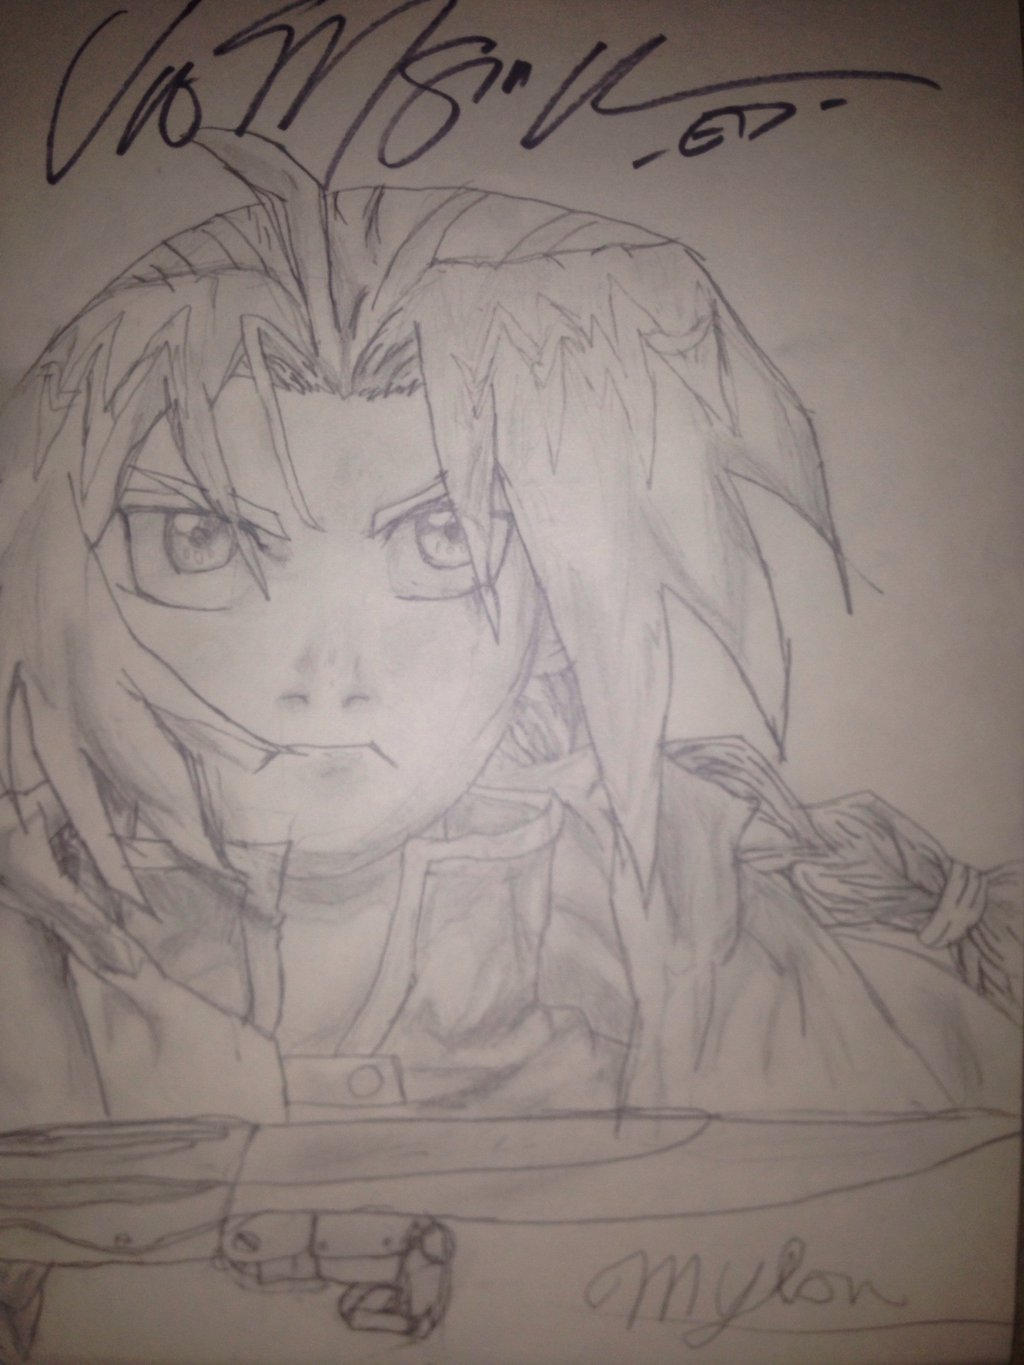 vic mignogna signed edward ed elric by thesly797 on deviantart